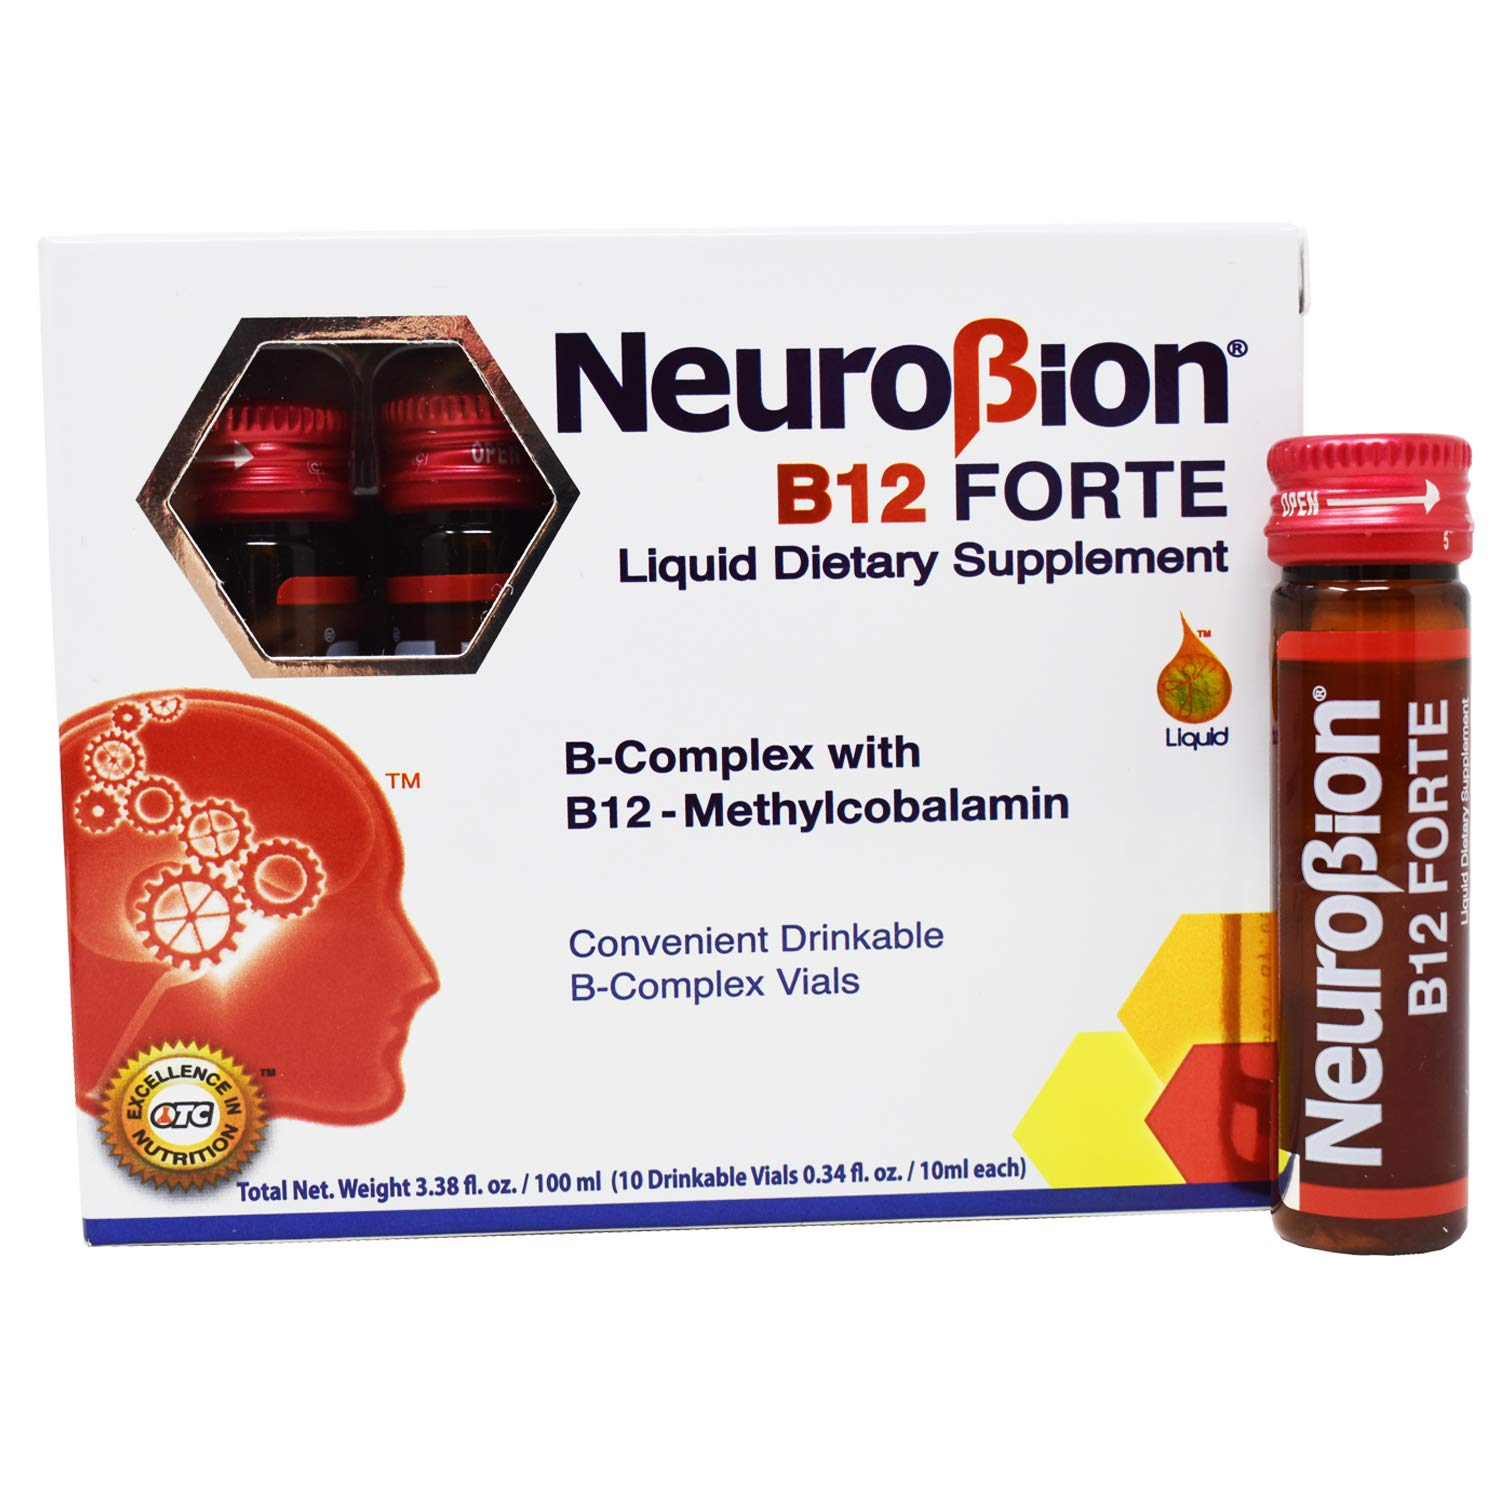 Neurobion B12 Forte 10 Vials x 10 ml packaging may vary